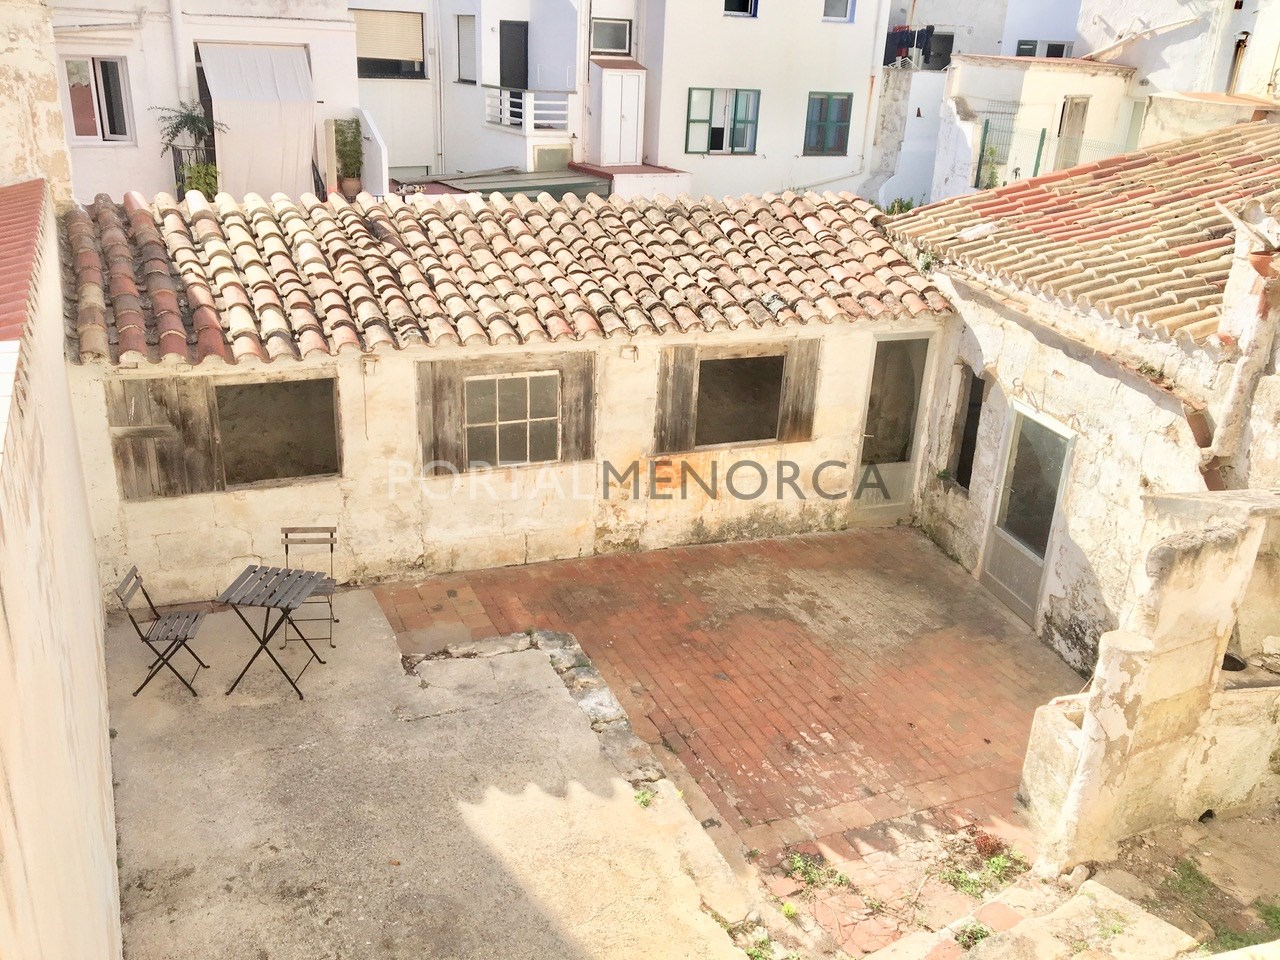 Patio and outbuilding from first floor